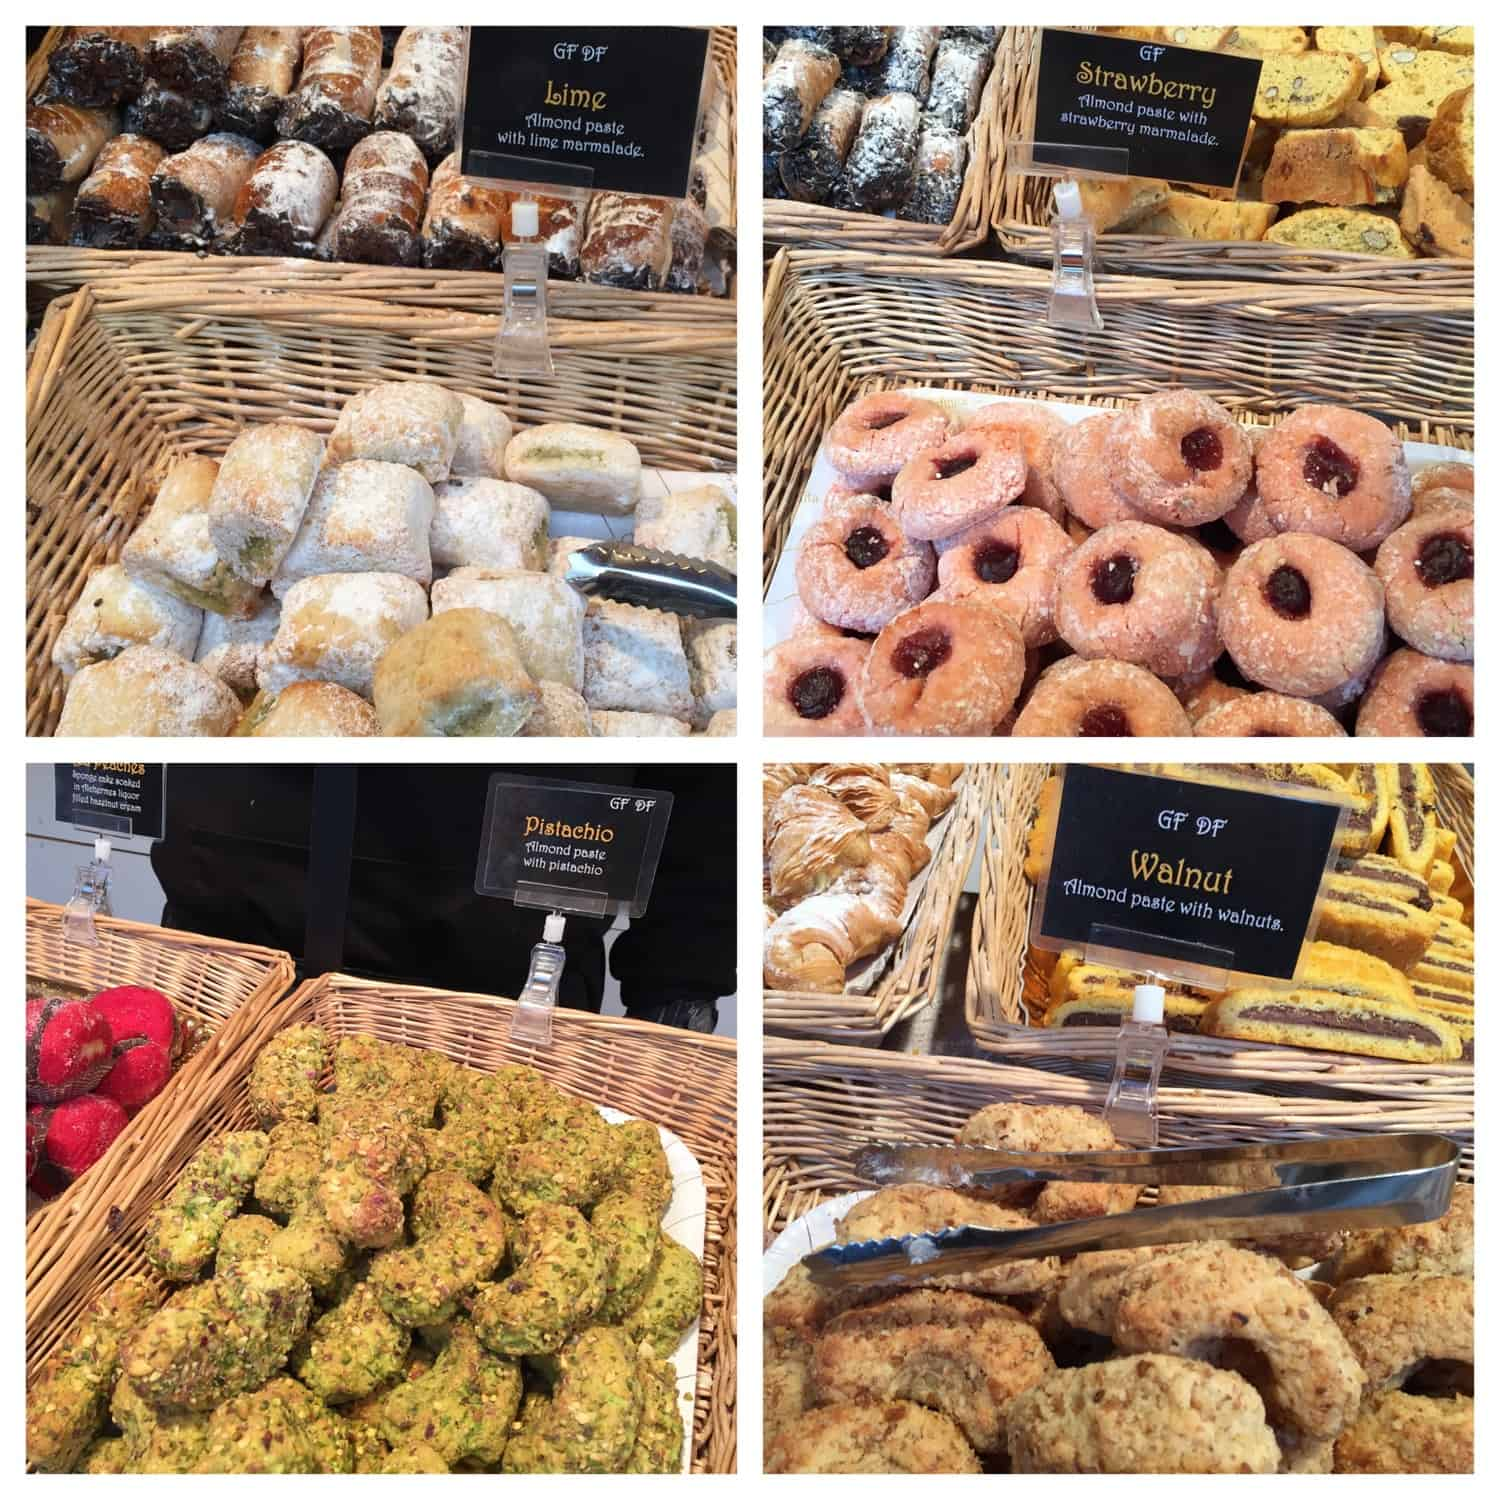 What's Gluten Free at Manchester Christmas Market?